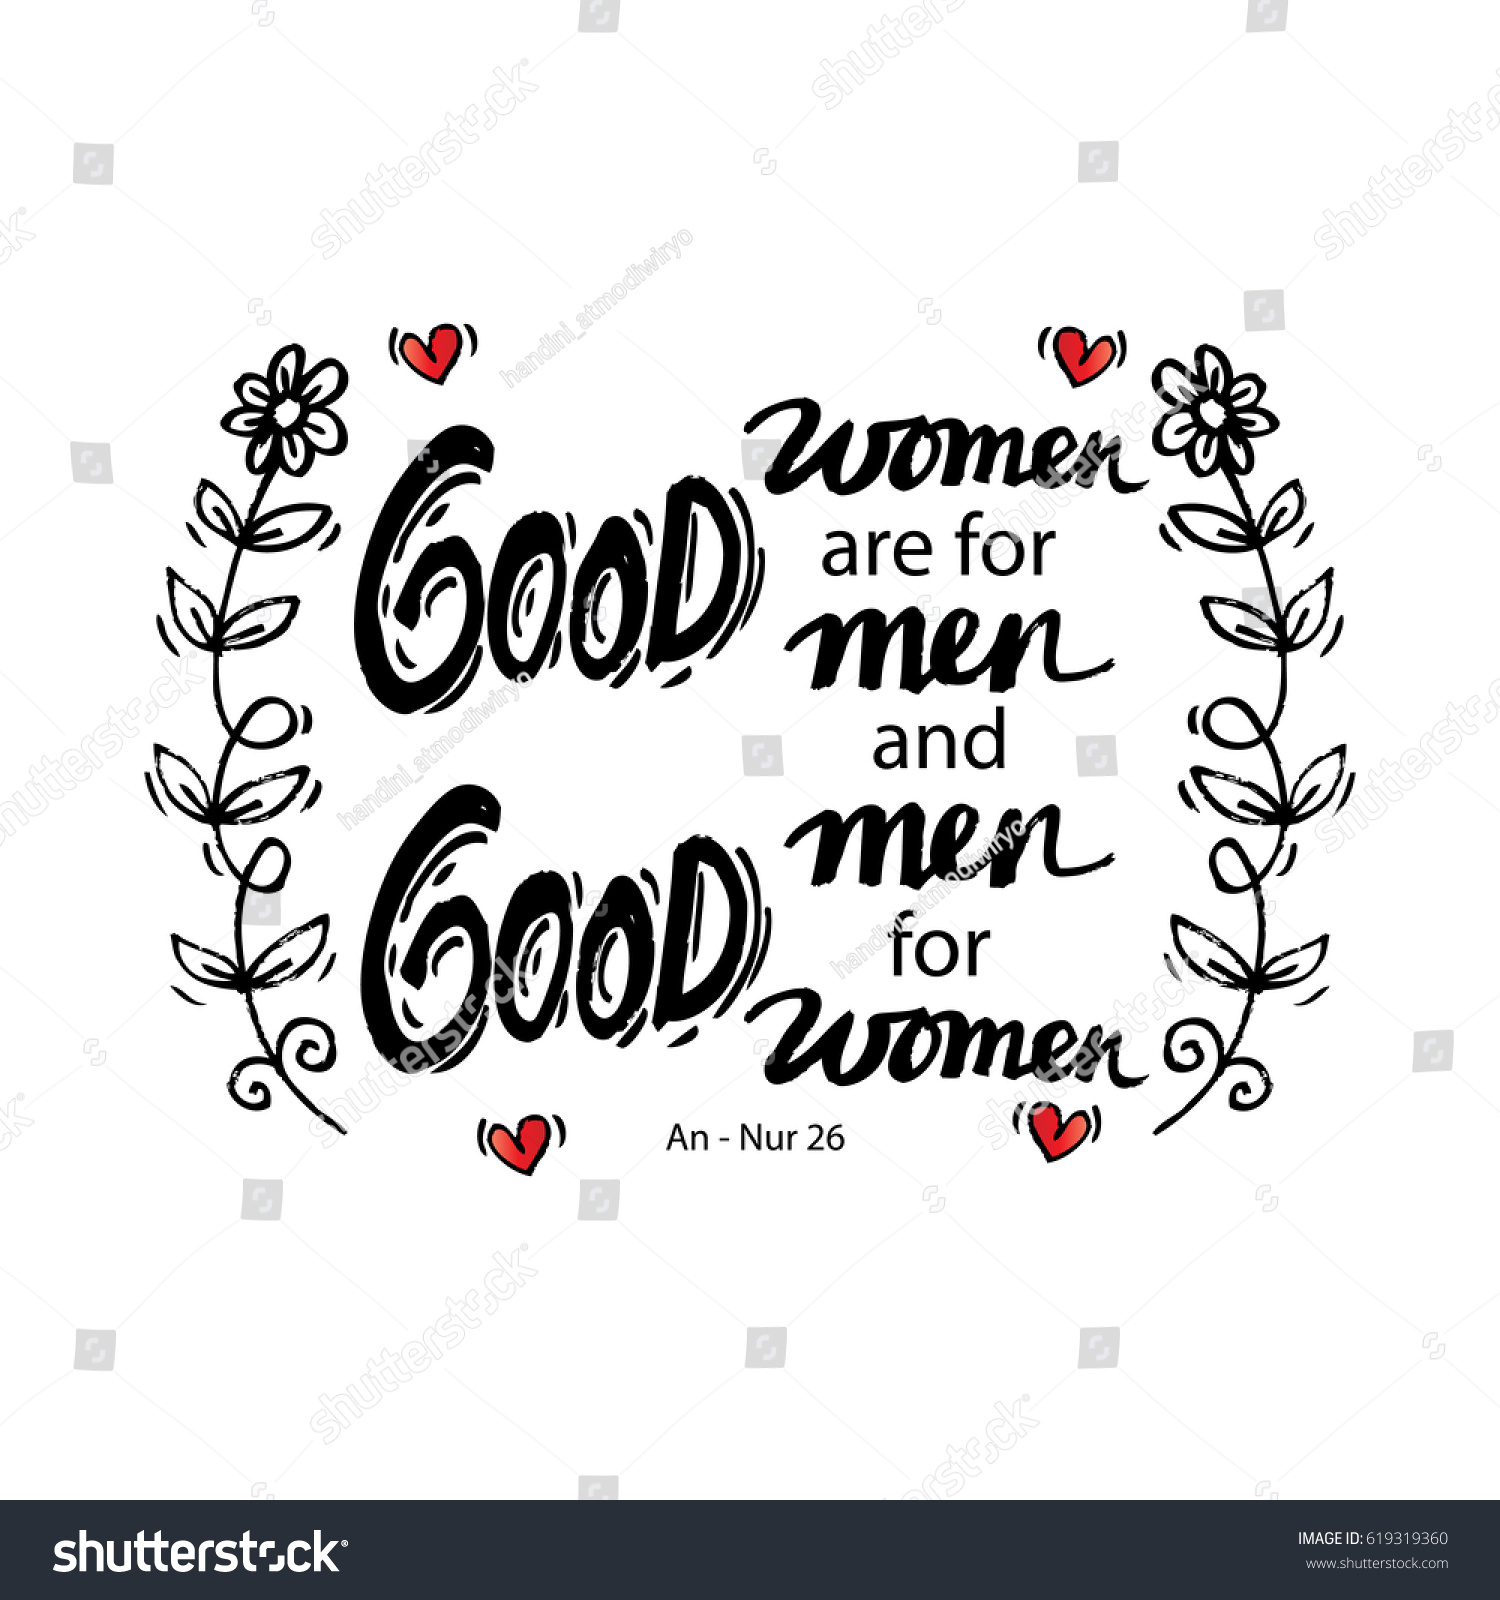 Good Woman Quotes Good Women Good Men Good Men Stock Vector 619319360  Shutterstock